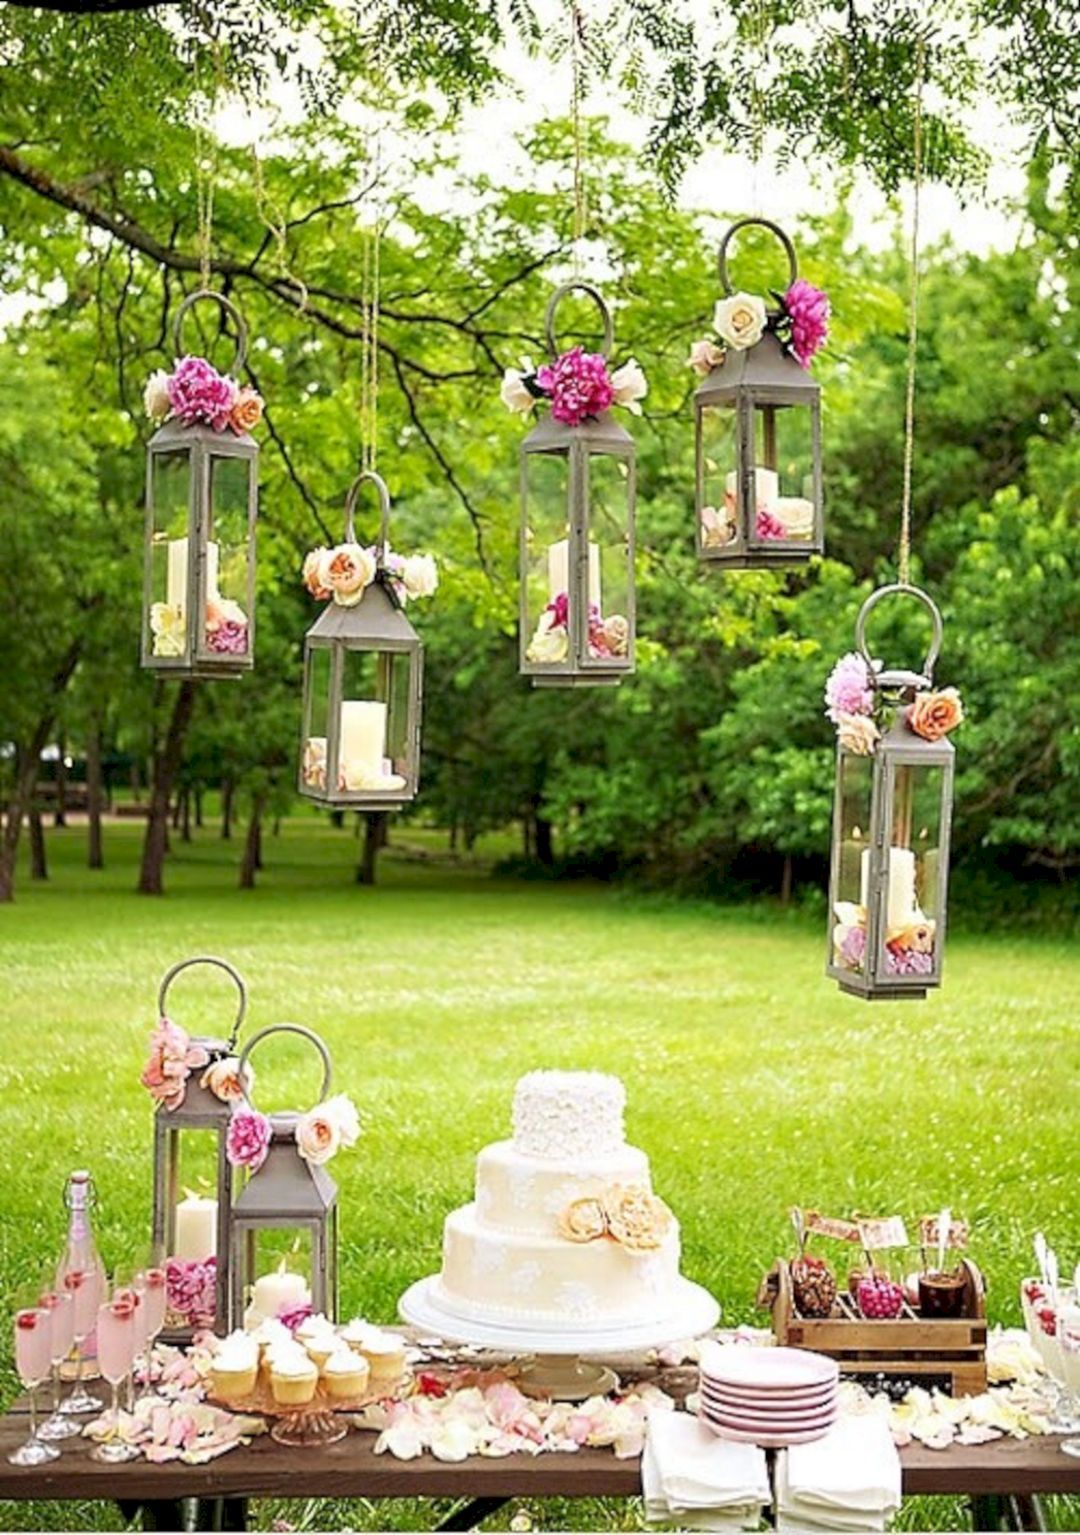 Adorable 10+ Awesome Garden Party Decorations Ideas For Your